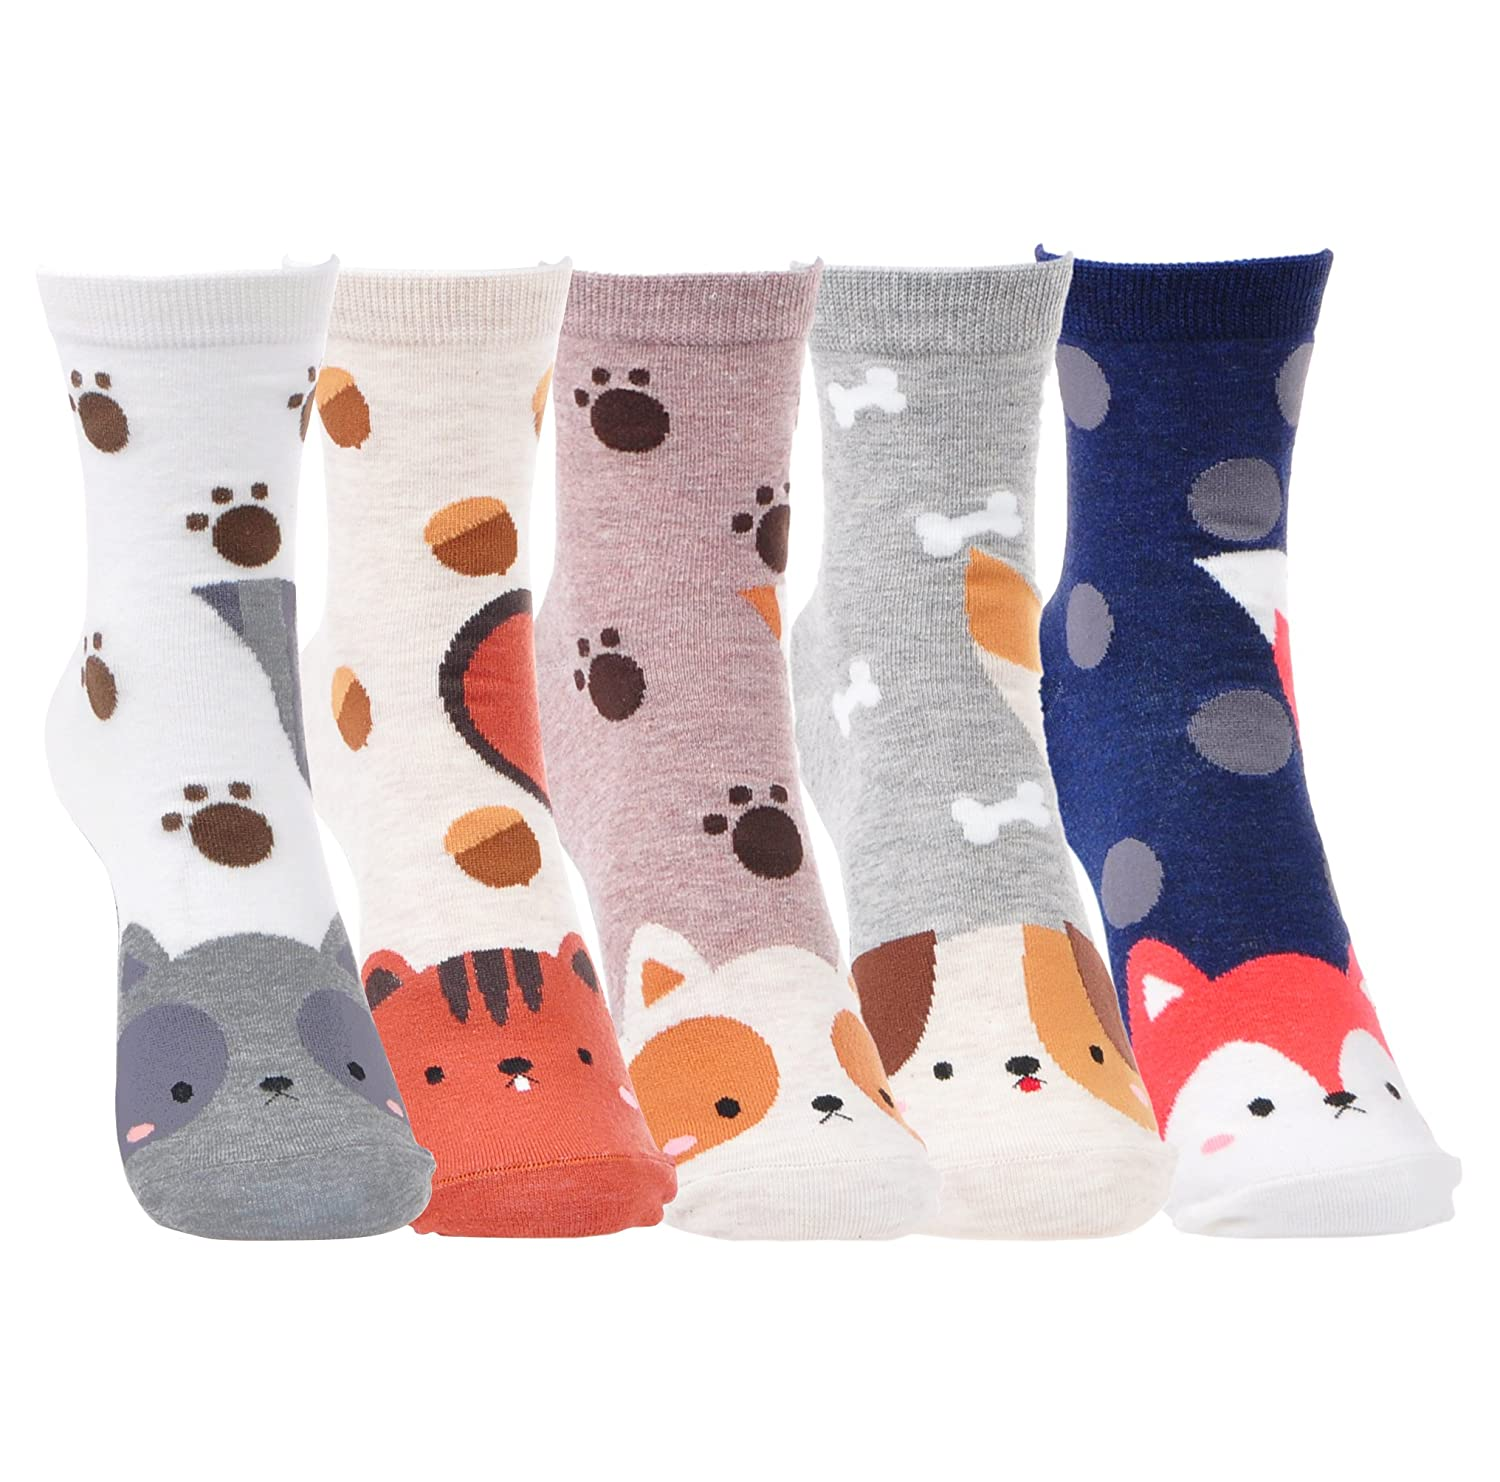 460466d6cc3 Amazon.com  5 Pairs Cute Soft Kitty Socks Funny Funky Cotten Gift Present  Kitten Socks For Women Girls (Cute Animals)  Home Audio   Theater